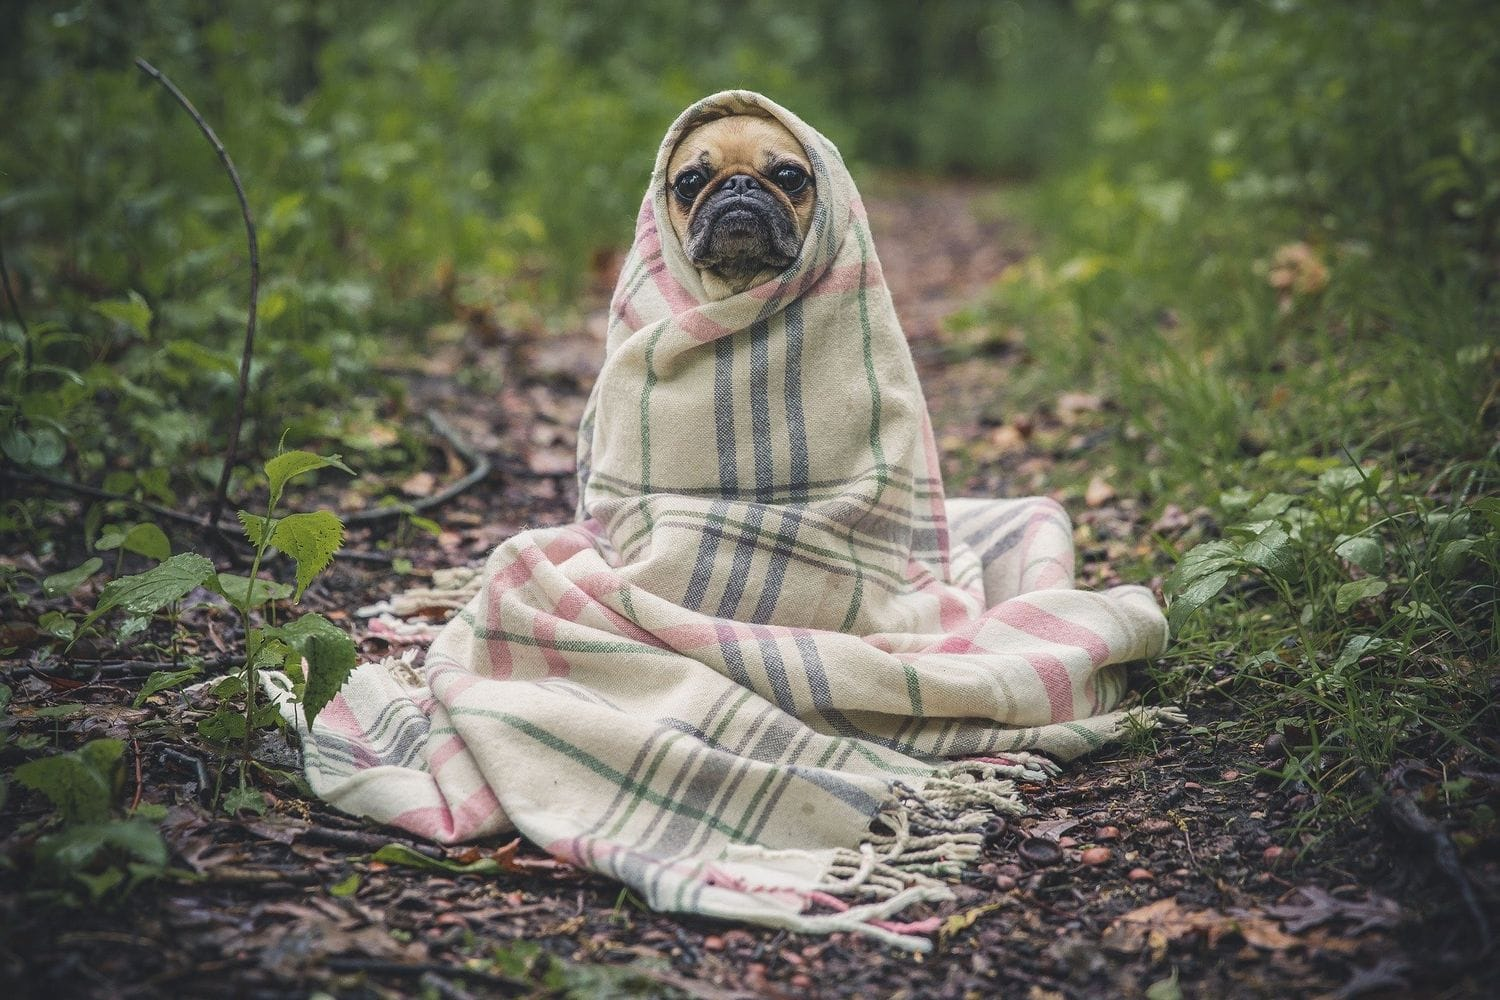 blanket wrapped around a dog in the forrest